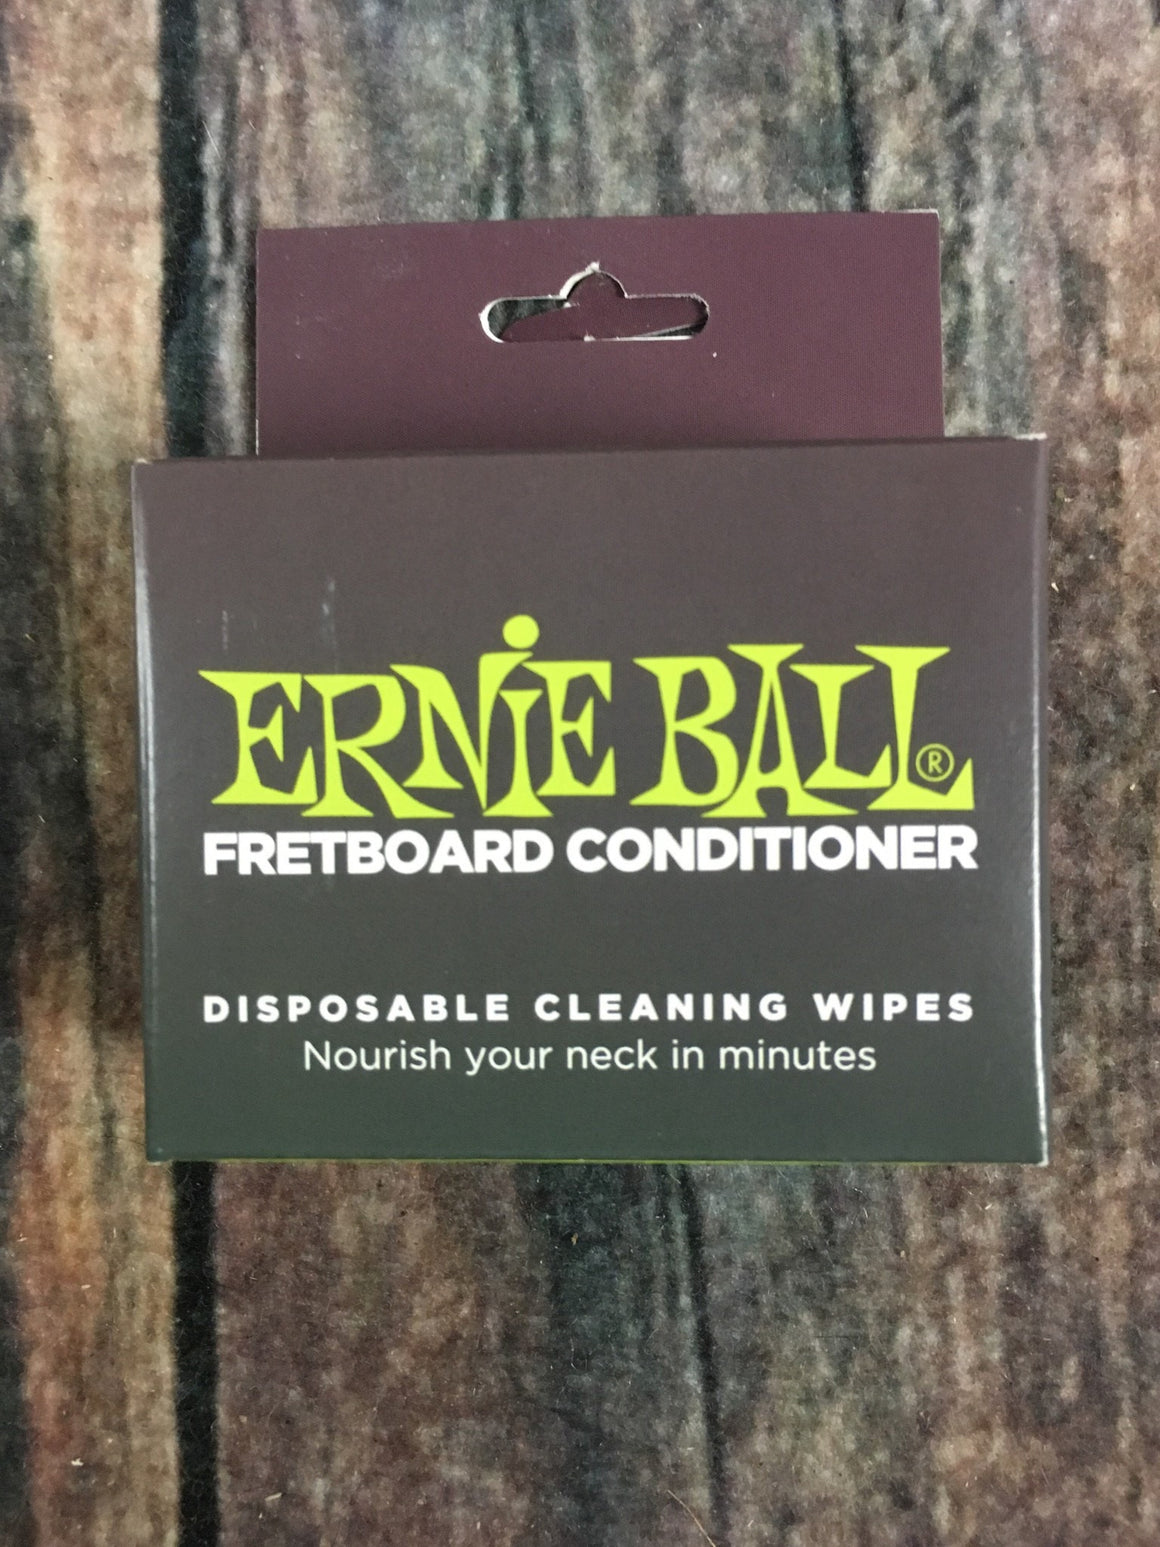 ernie ball Polish Cloth Ernie Ball Wonder Wipes Fretboard Conditioner 6 Pack